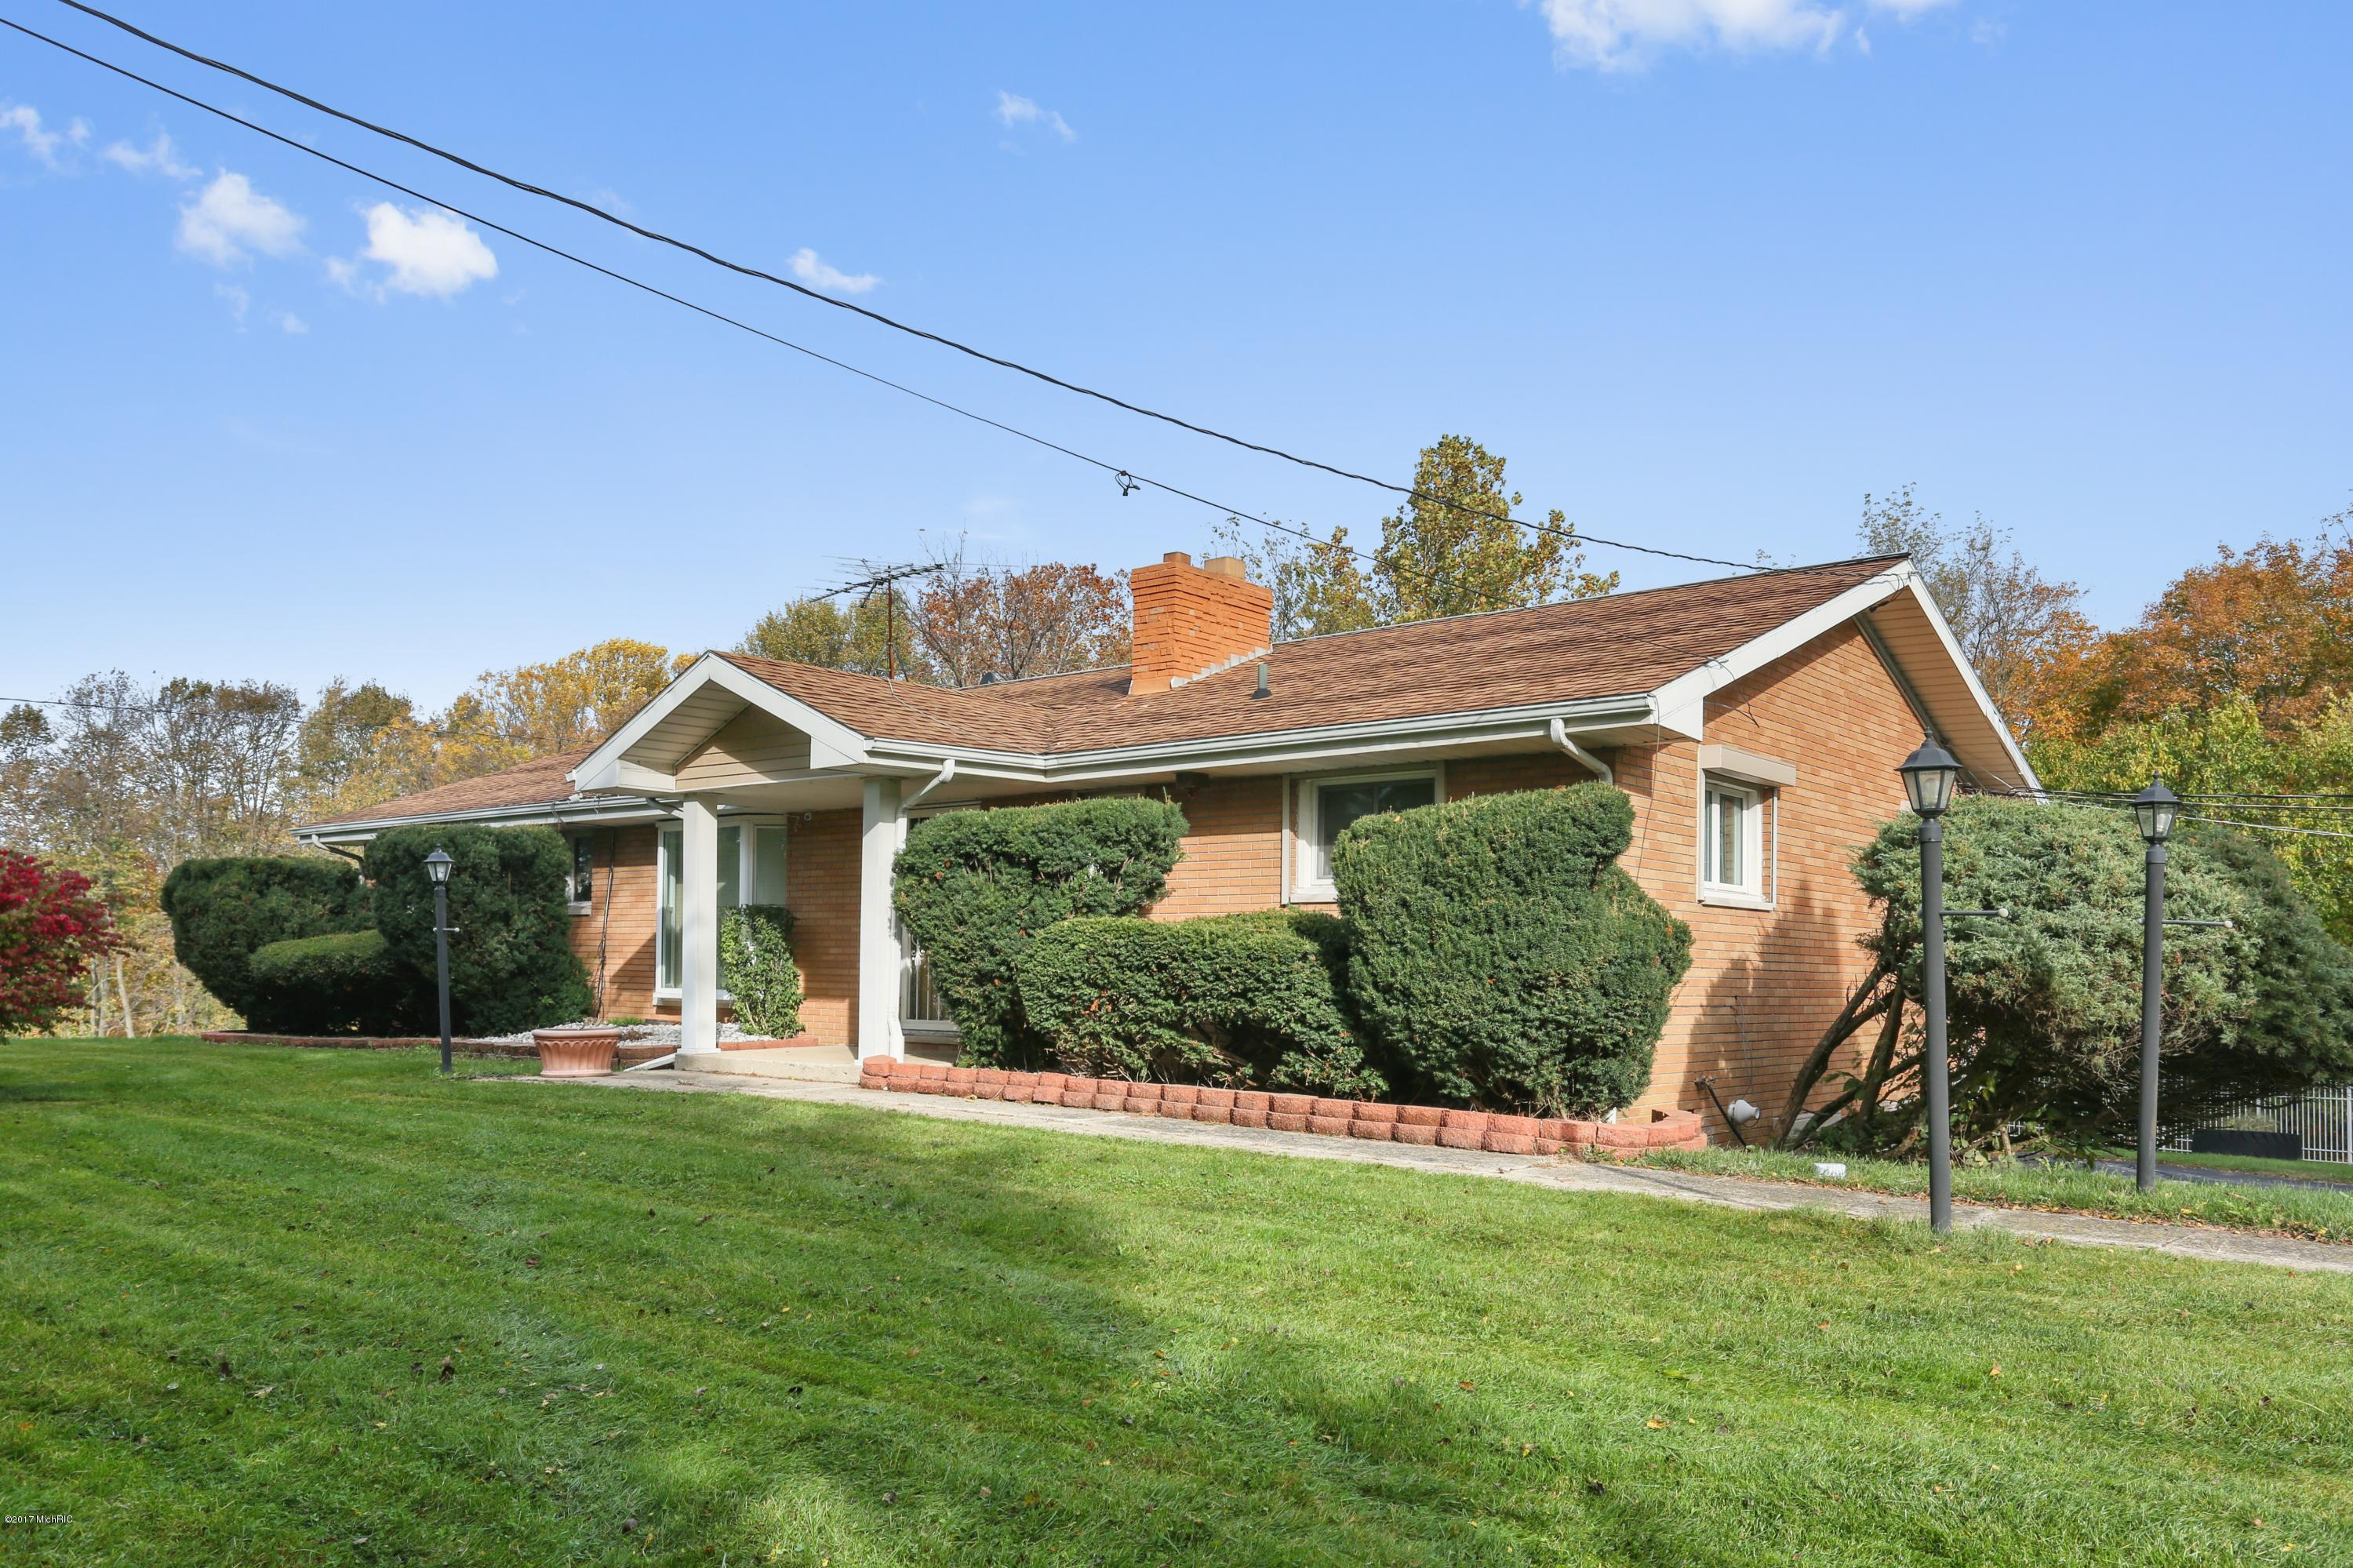 5563 W SPRING CREEK ROAD, THREE OAKS, MI 49128